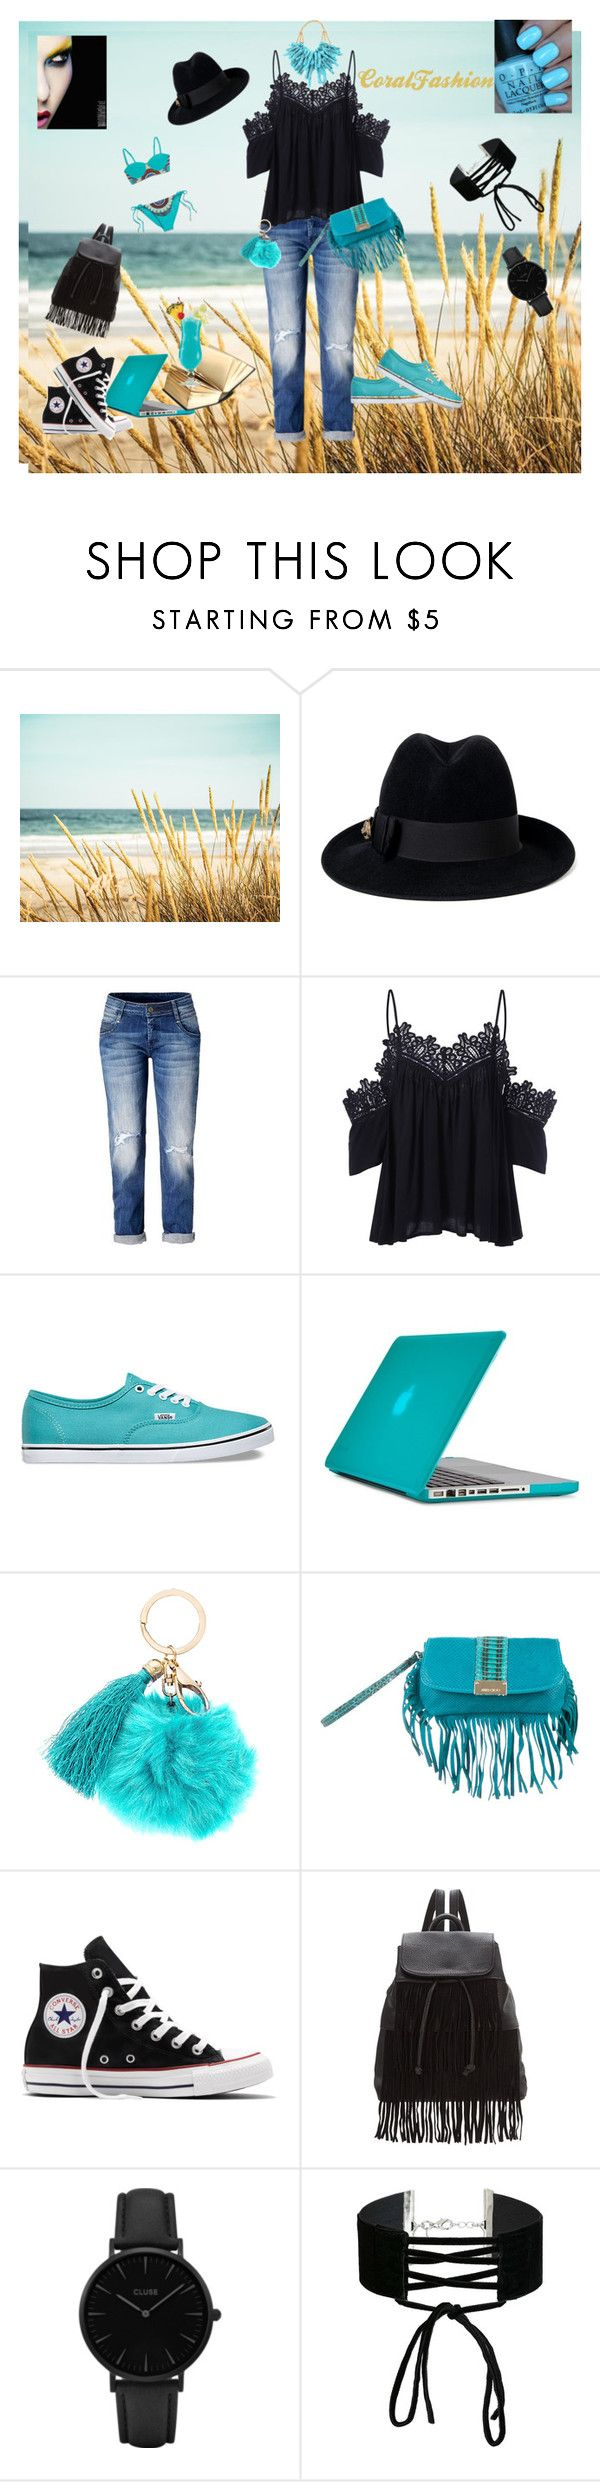 """""""Aqua"""" by laura-rusu-i on Polyvore featuring Gucci, Vans, Speck, Jimmy Choo, Converse, Glamorous, CLUSE, Miss Selfridge and OPI"""